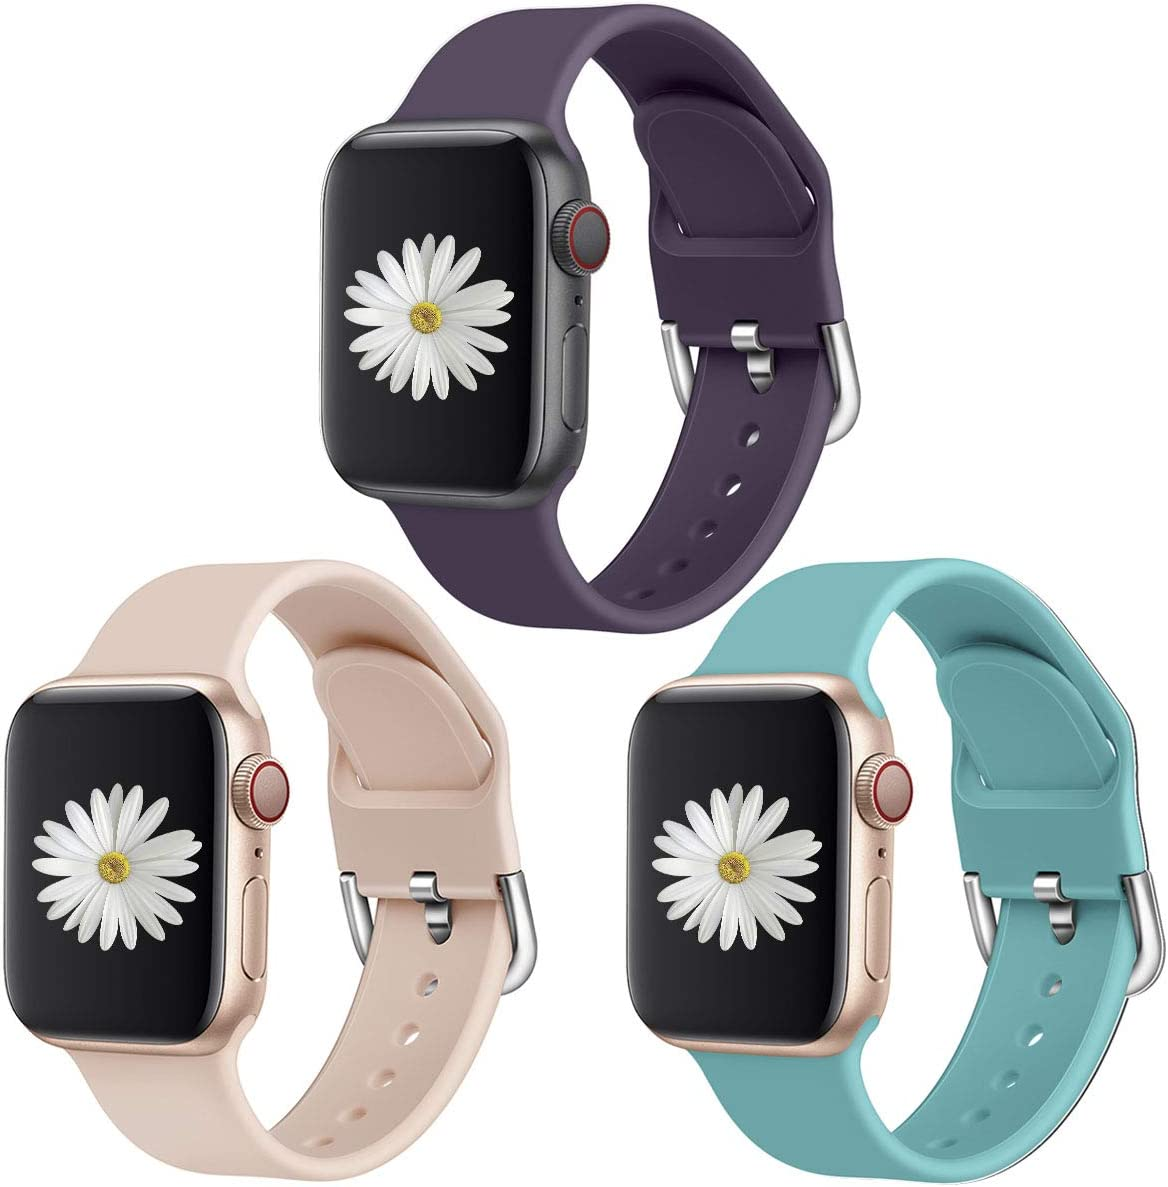 SUPOIX 3 Pack Compatible with Apple Watch Band 38mm 42mm 40mm 44mm, Men Women Soft Silicone Replacement Band for iWatch Series 6 5 4 3 2 1 (38mm/40mm M/L)